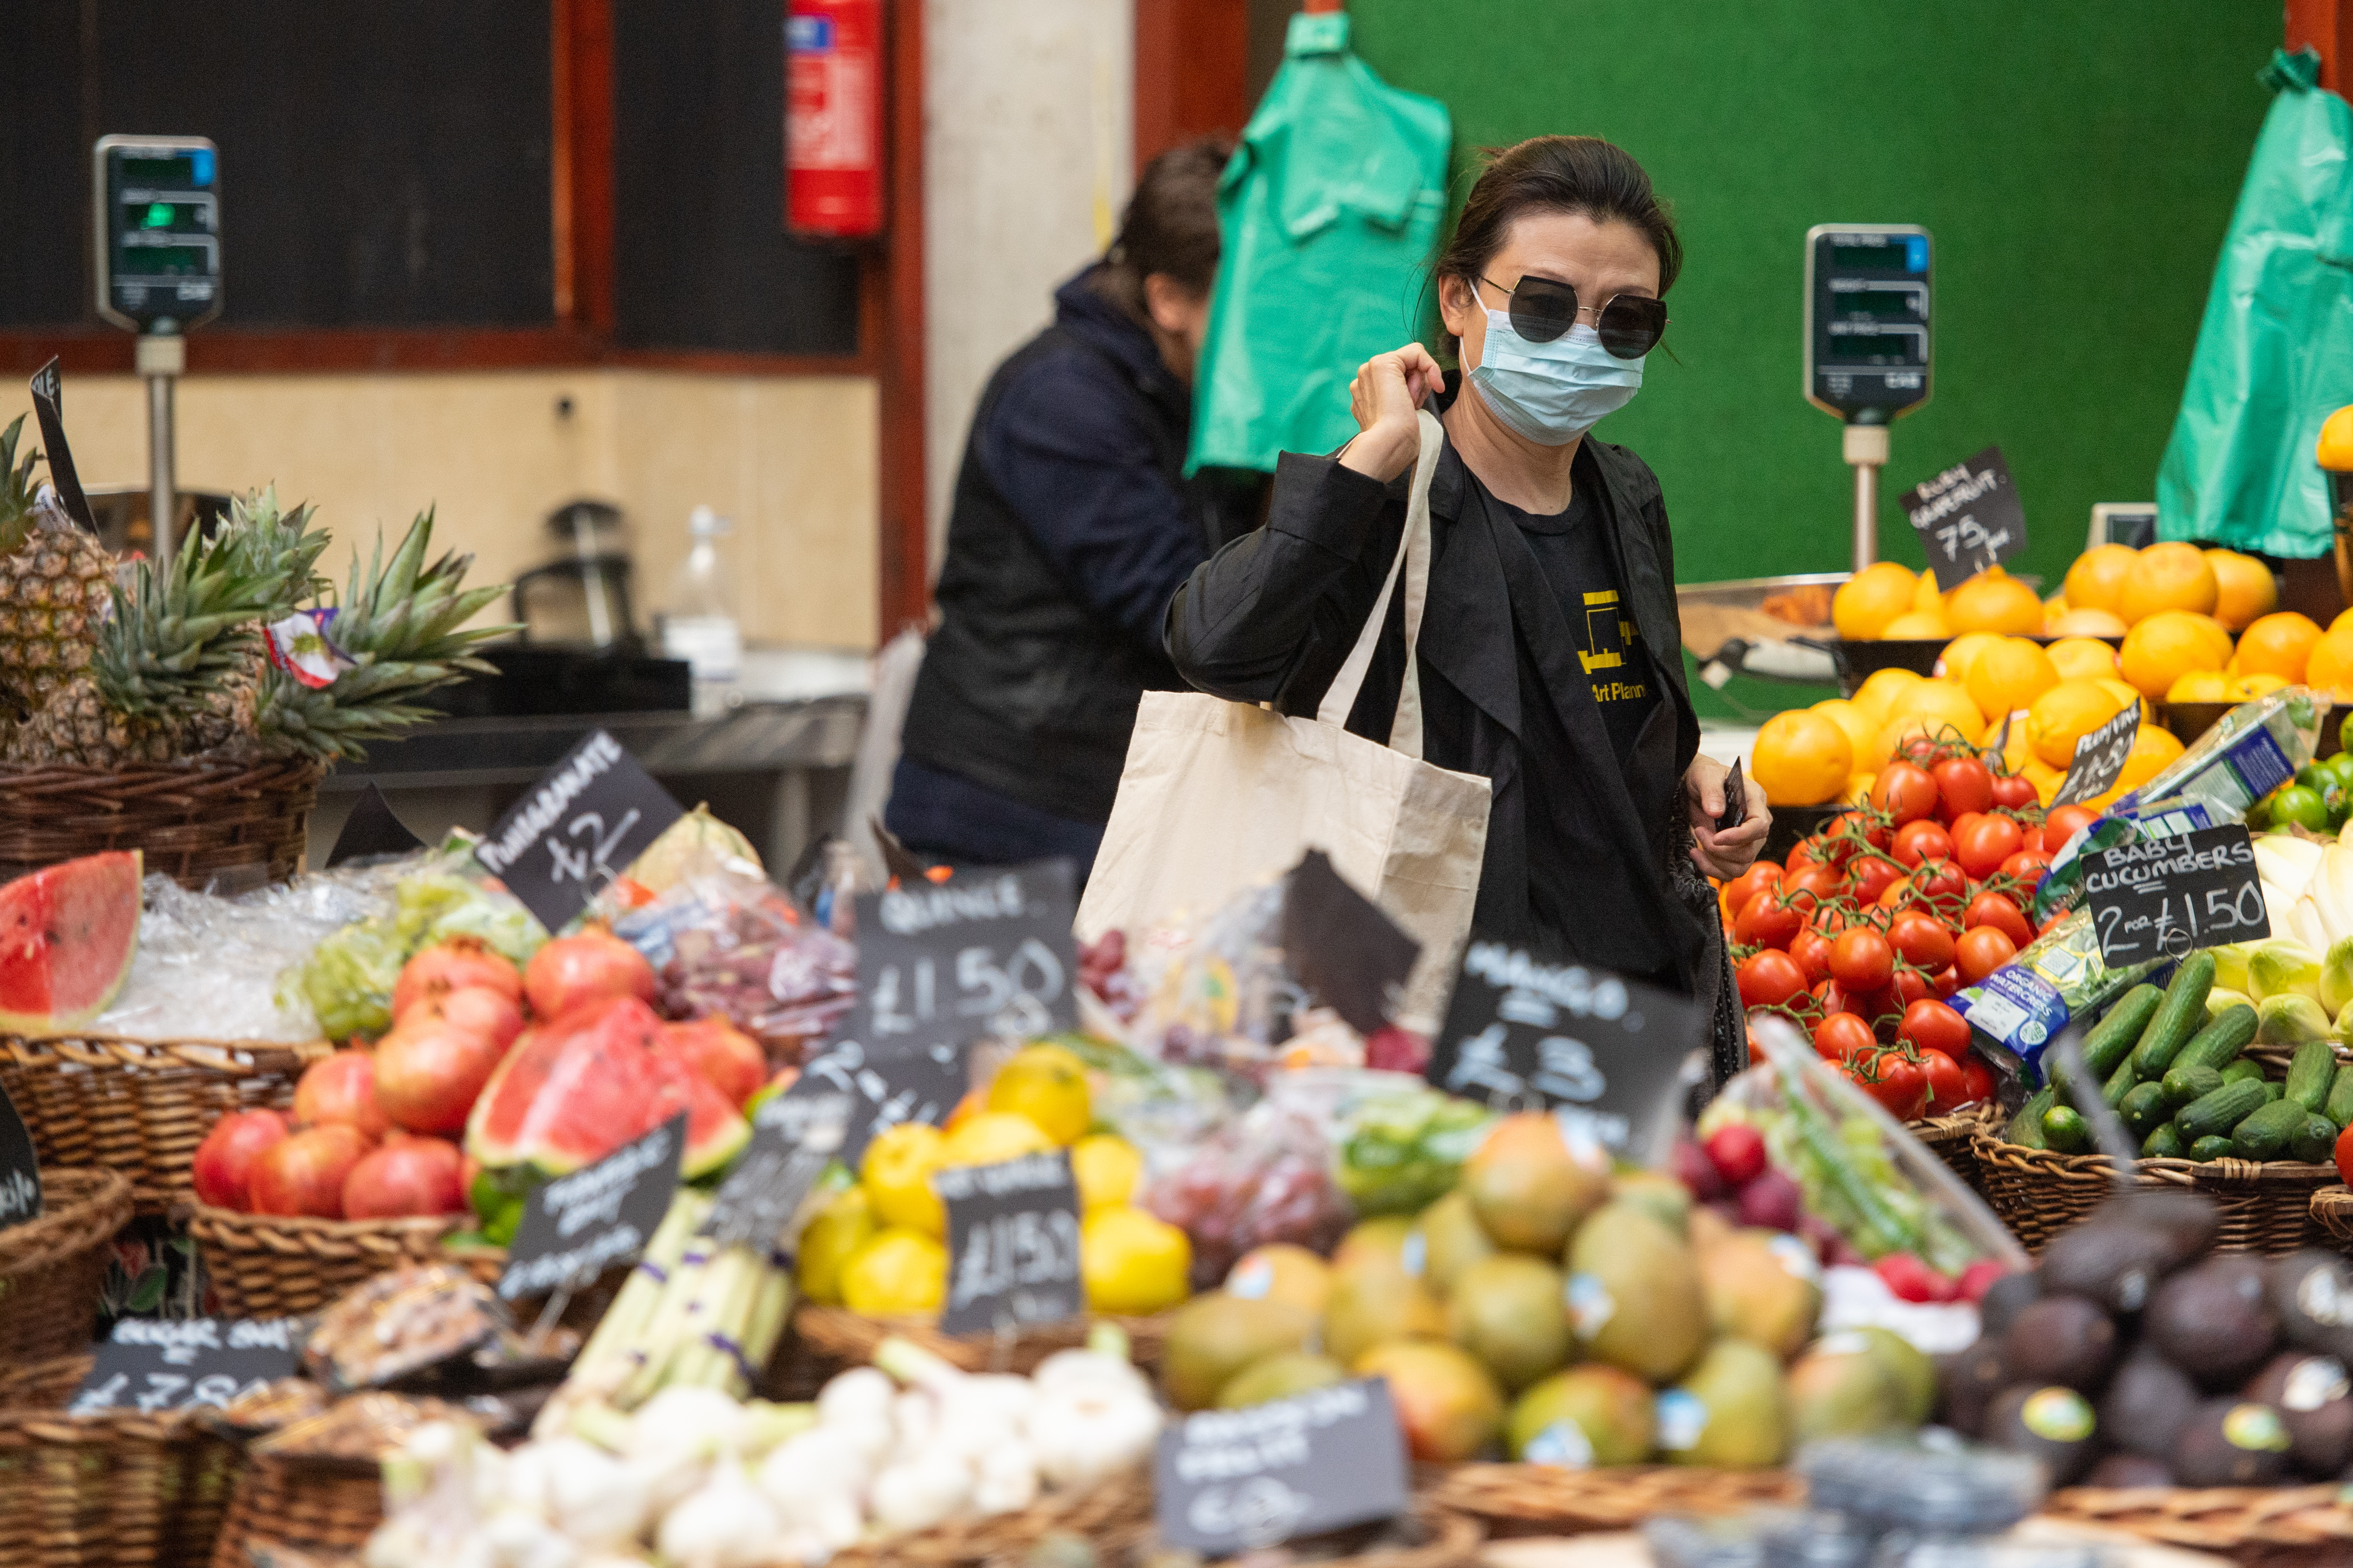 A shopper wearing a protective face mask at Borough Market, in London, following the introduction of measures to bring England out of lockdown. (Photo by Dominic Lipinski/PA Images via Getty Images)